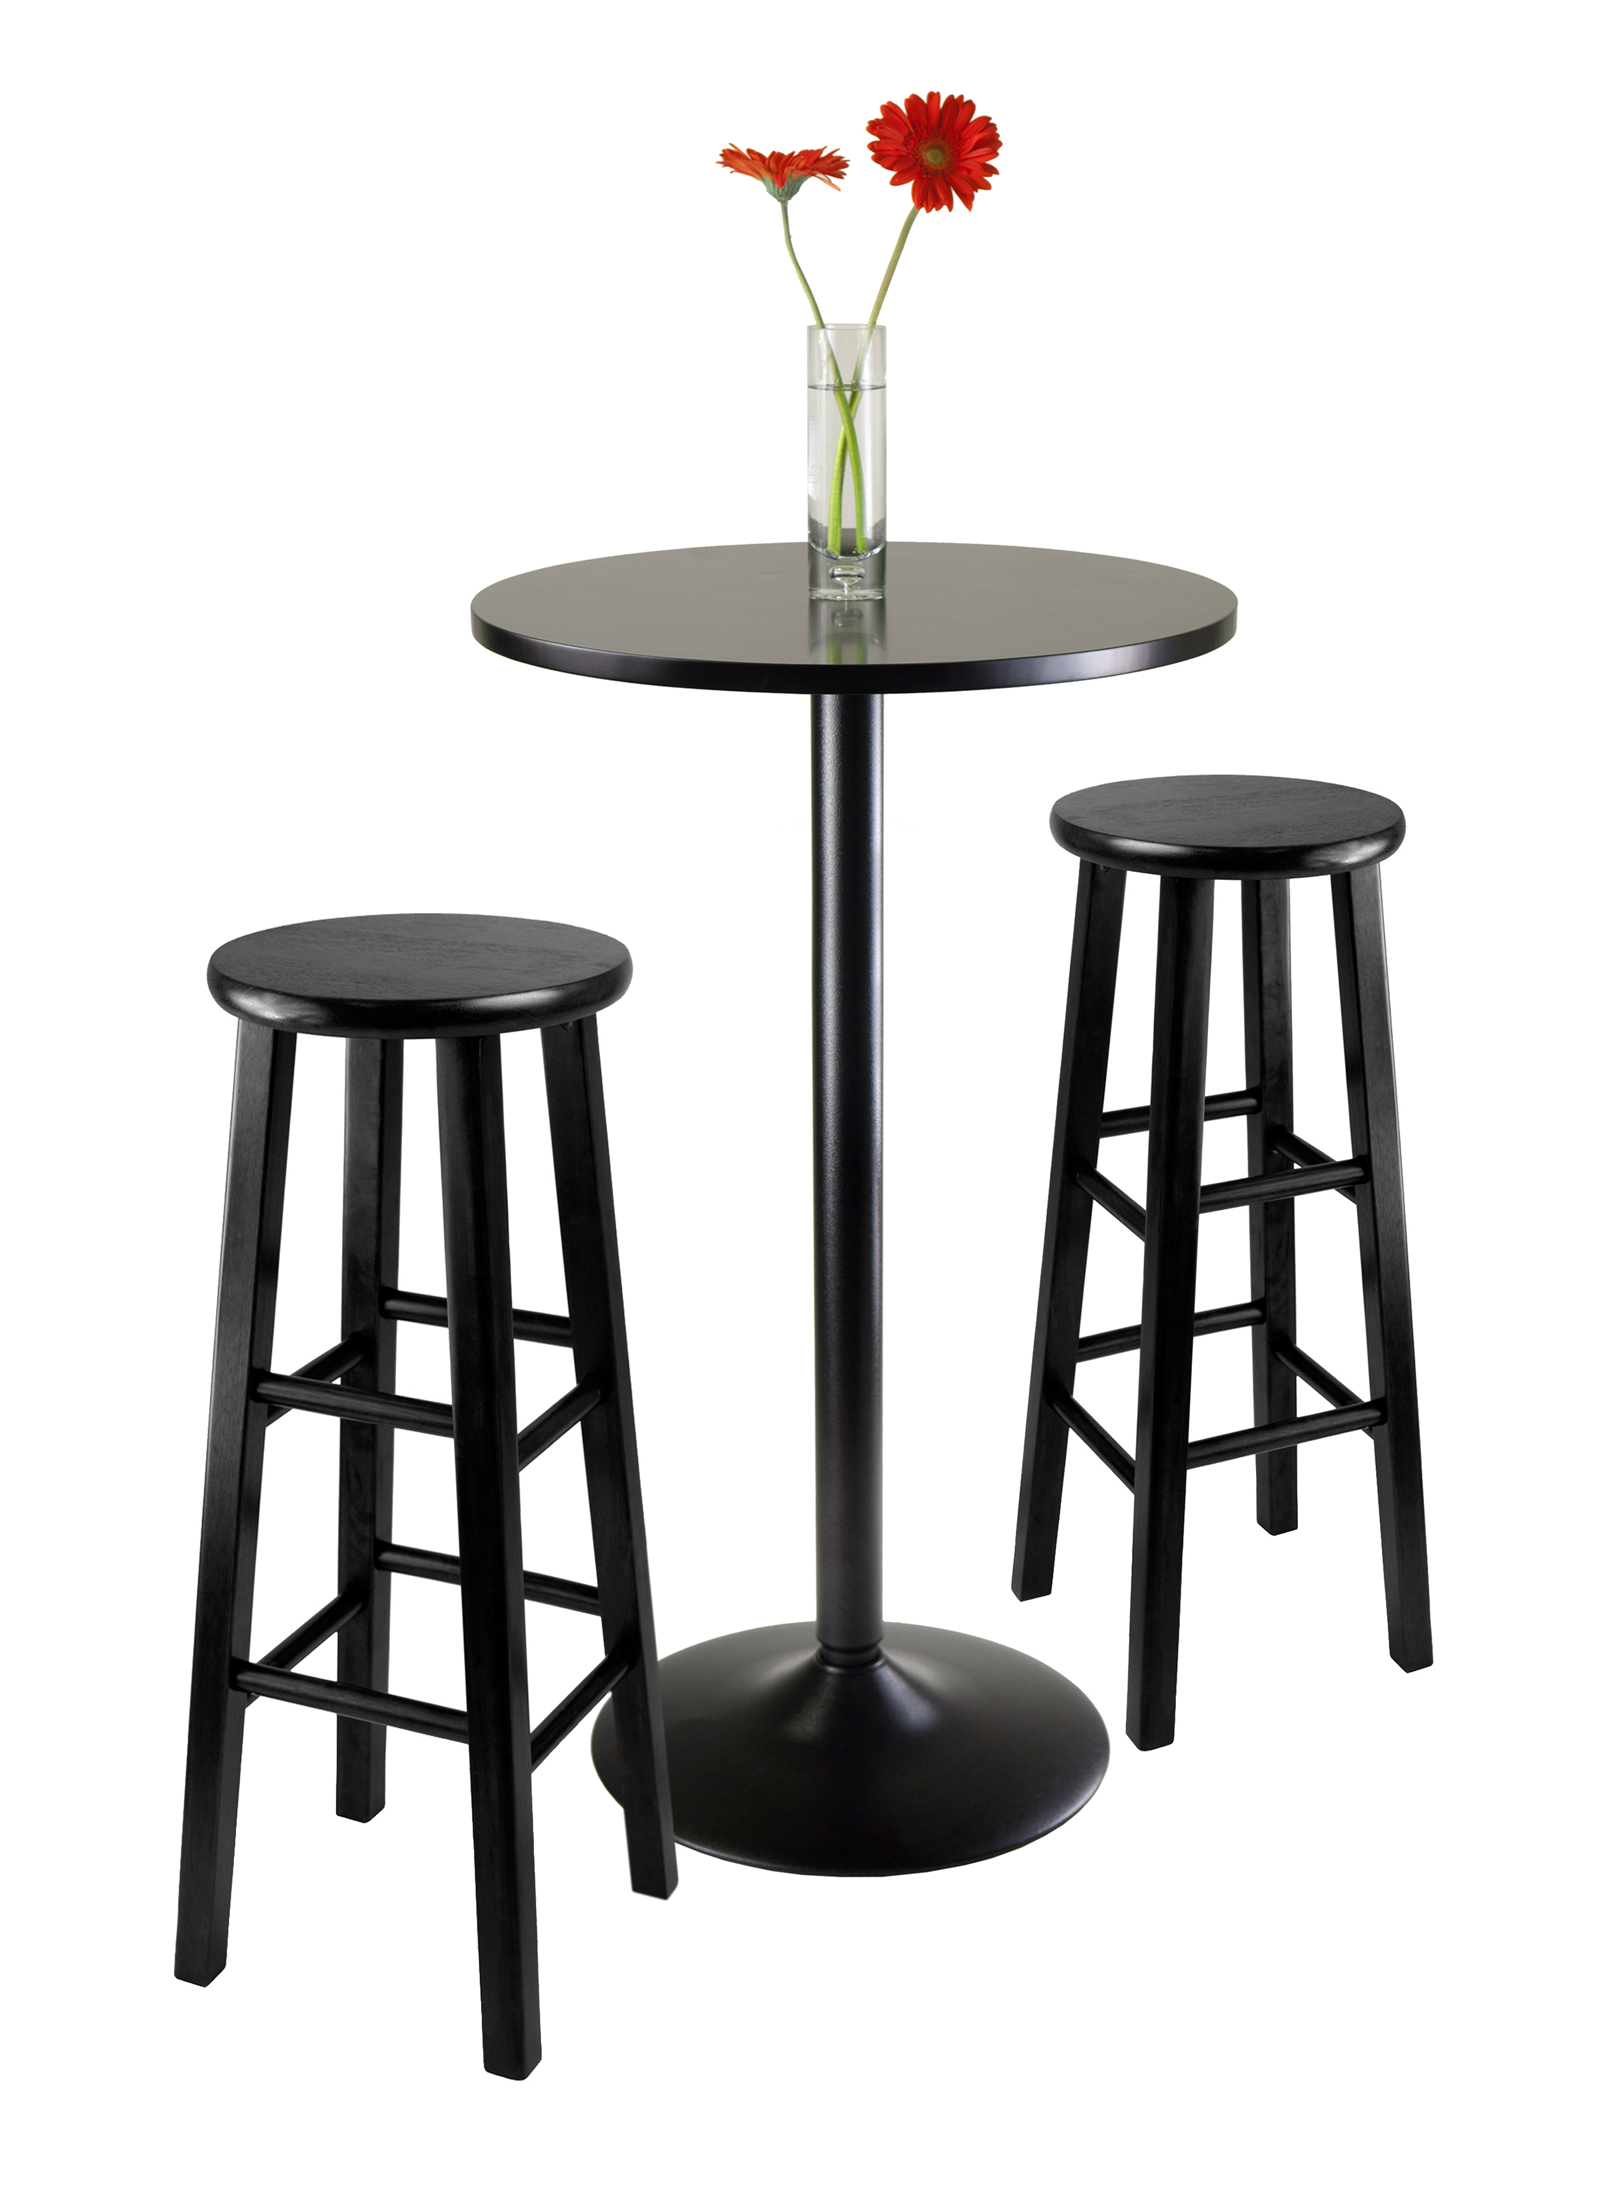 Winsome Wood Obsidian 3 Piece Round Black Pub Table Set With Regard To Most Recent Winsome 3 Piece Counter Height Dining Sets (View 10 of 20)